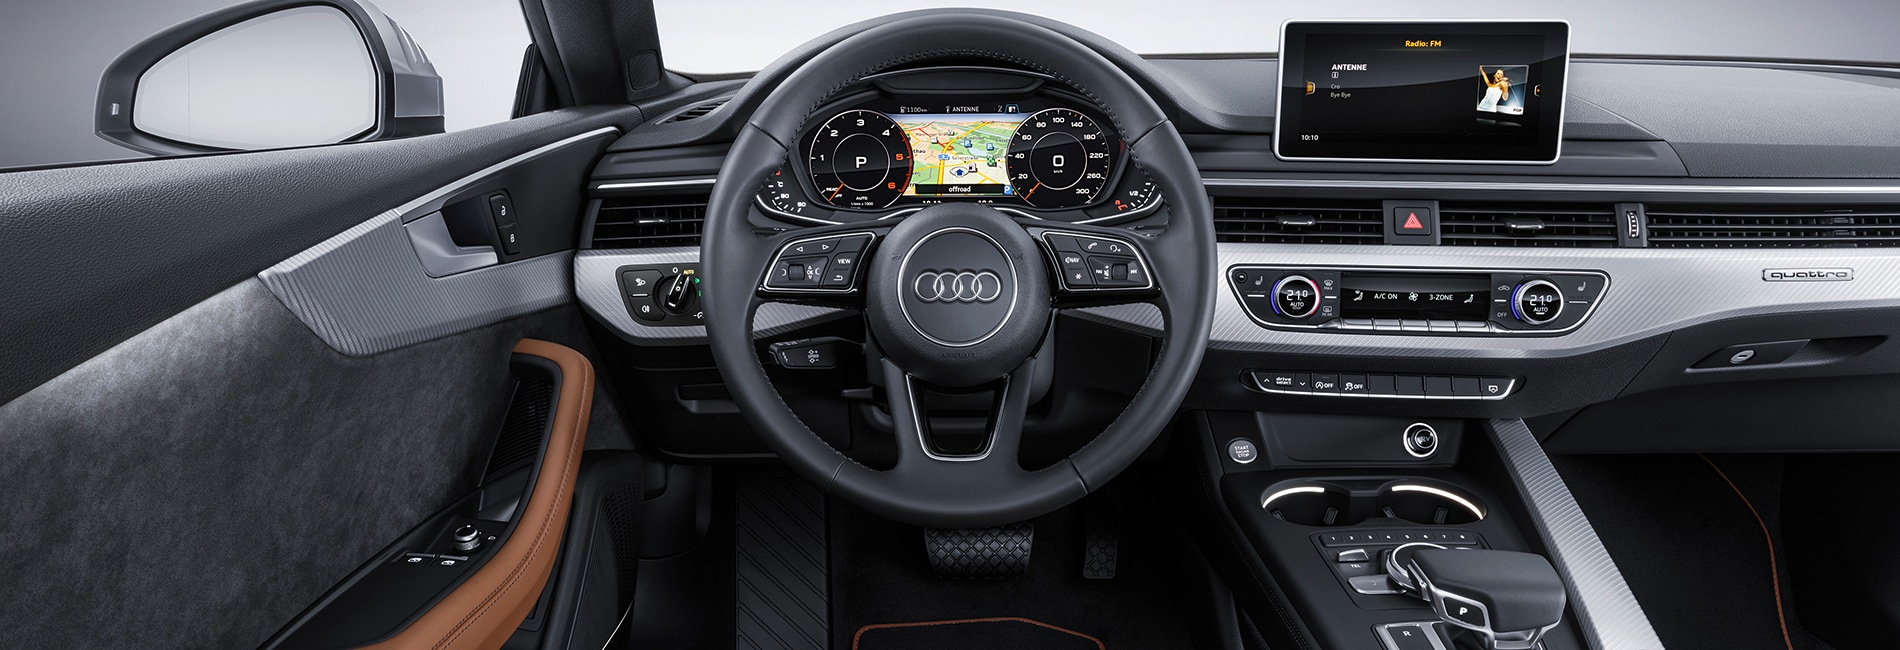 Audi A5 Interior Vehicle Features